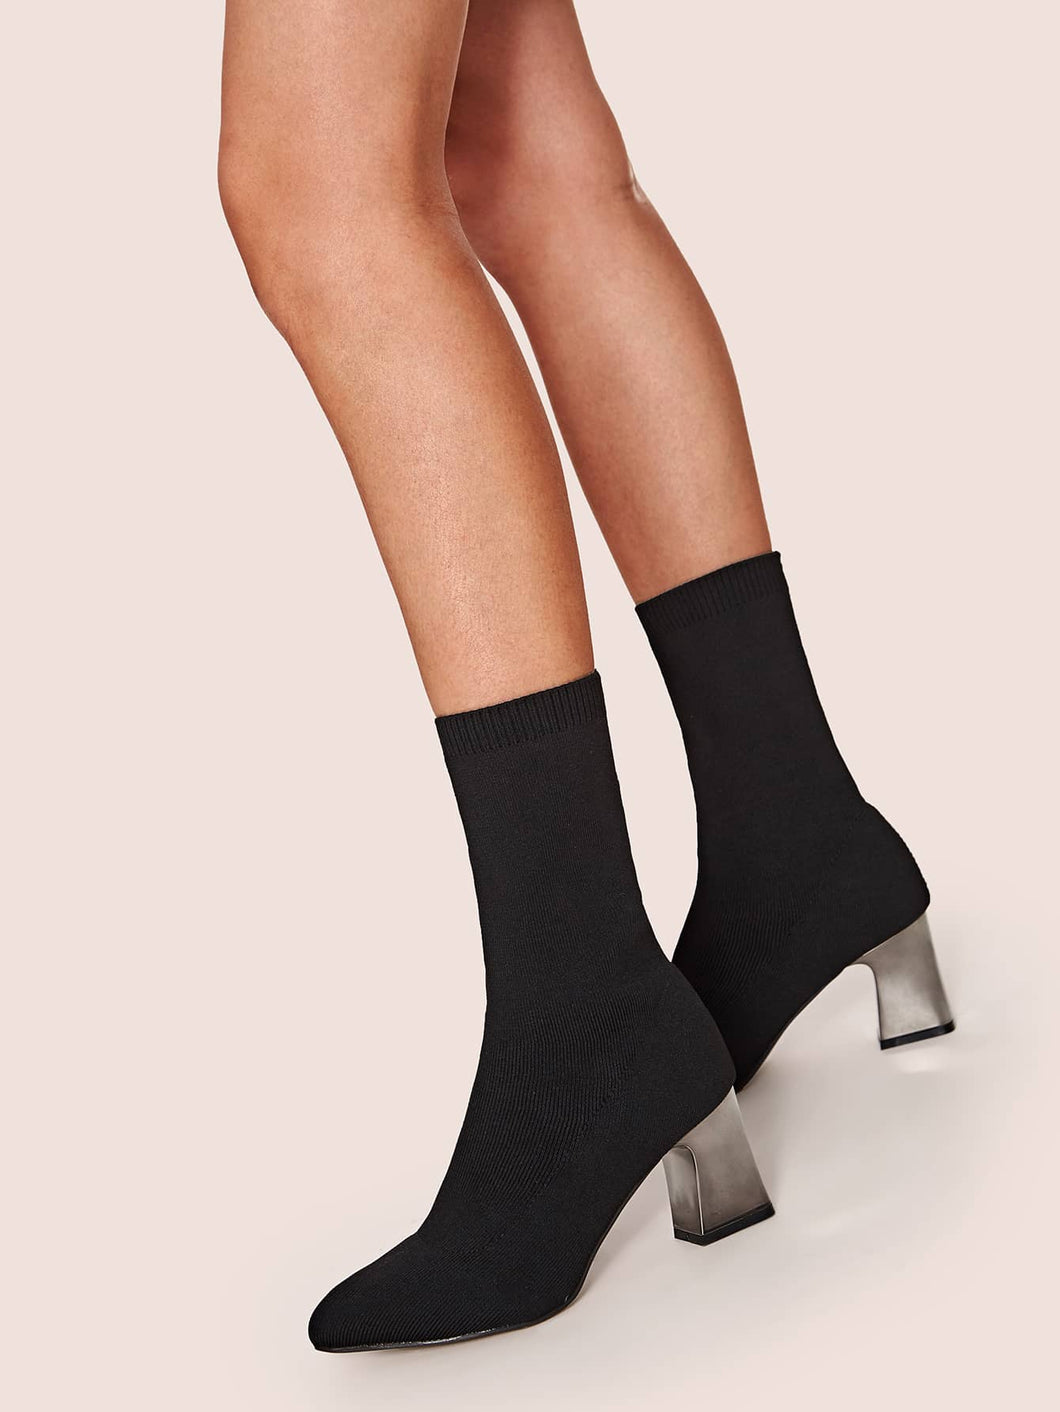 BOOTS Point Toe Chunky Heeled Sock Boots - EK CHIC